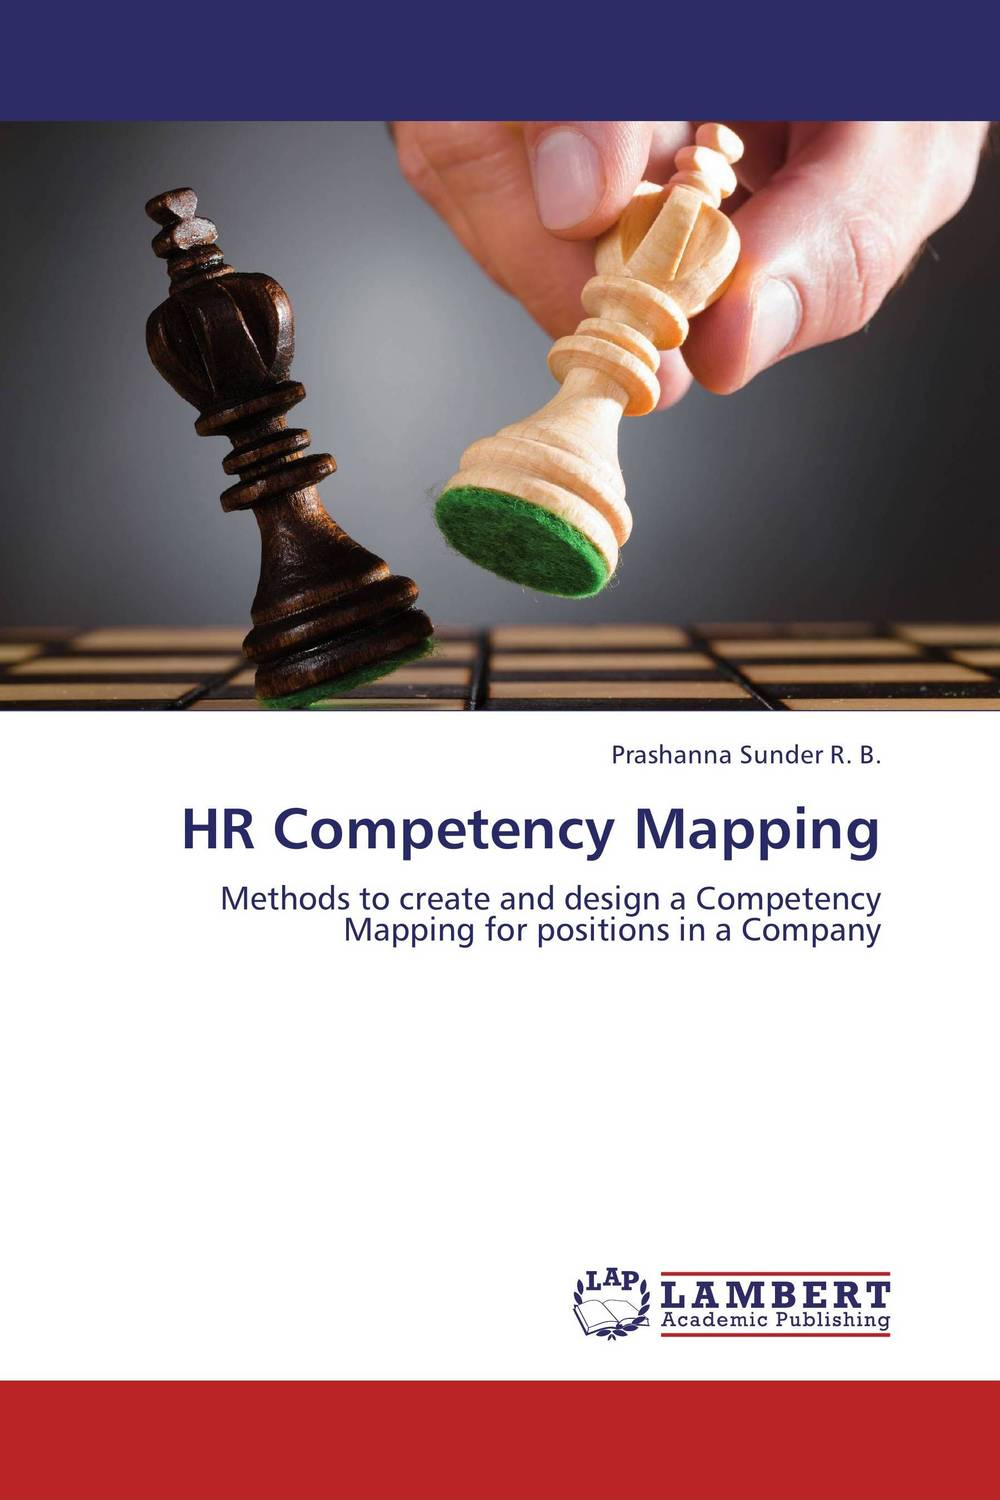 HR Competency Mapping competency mapping